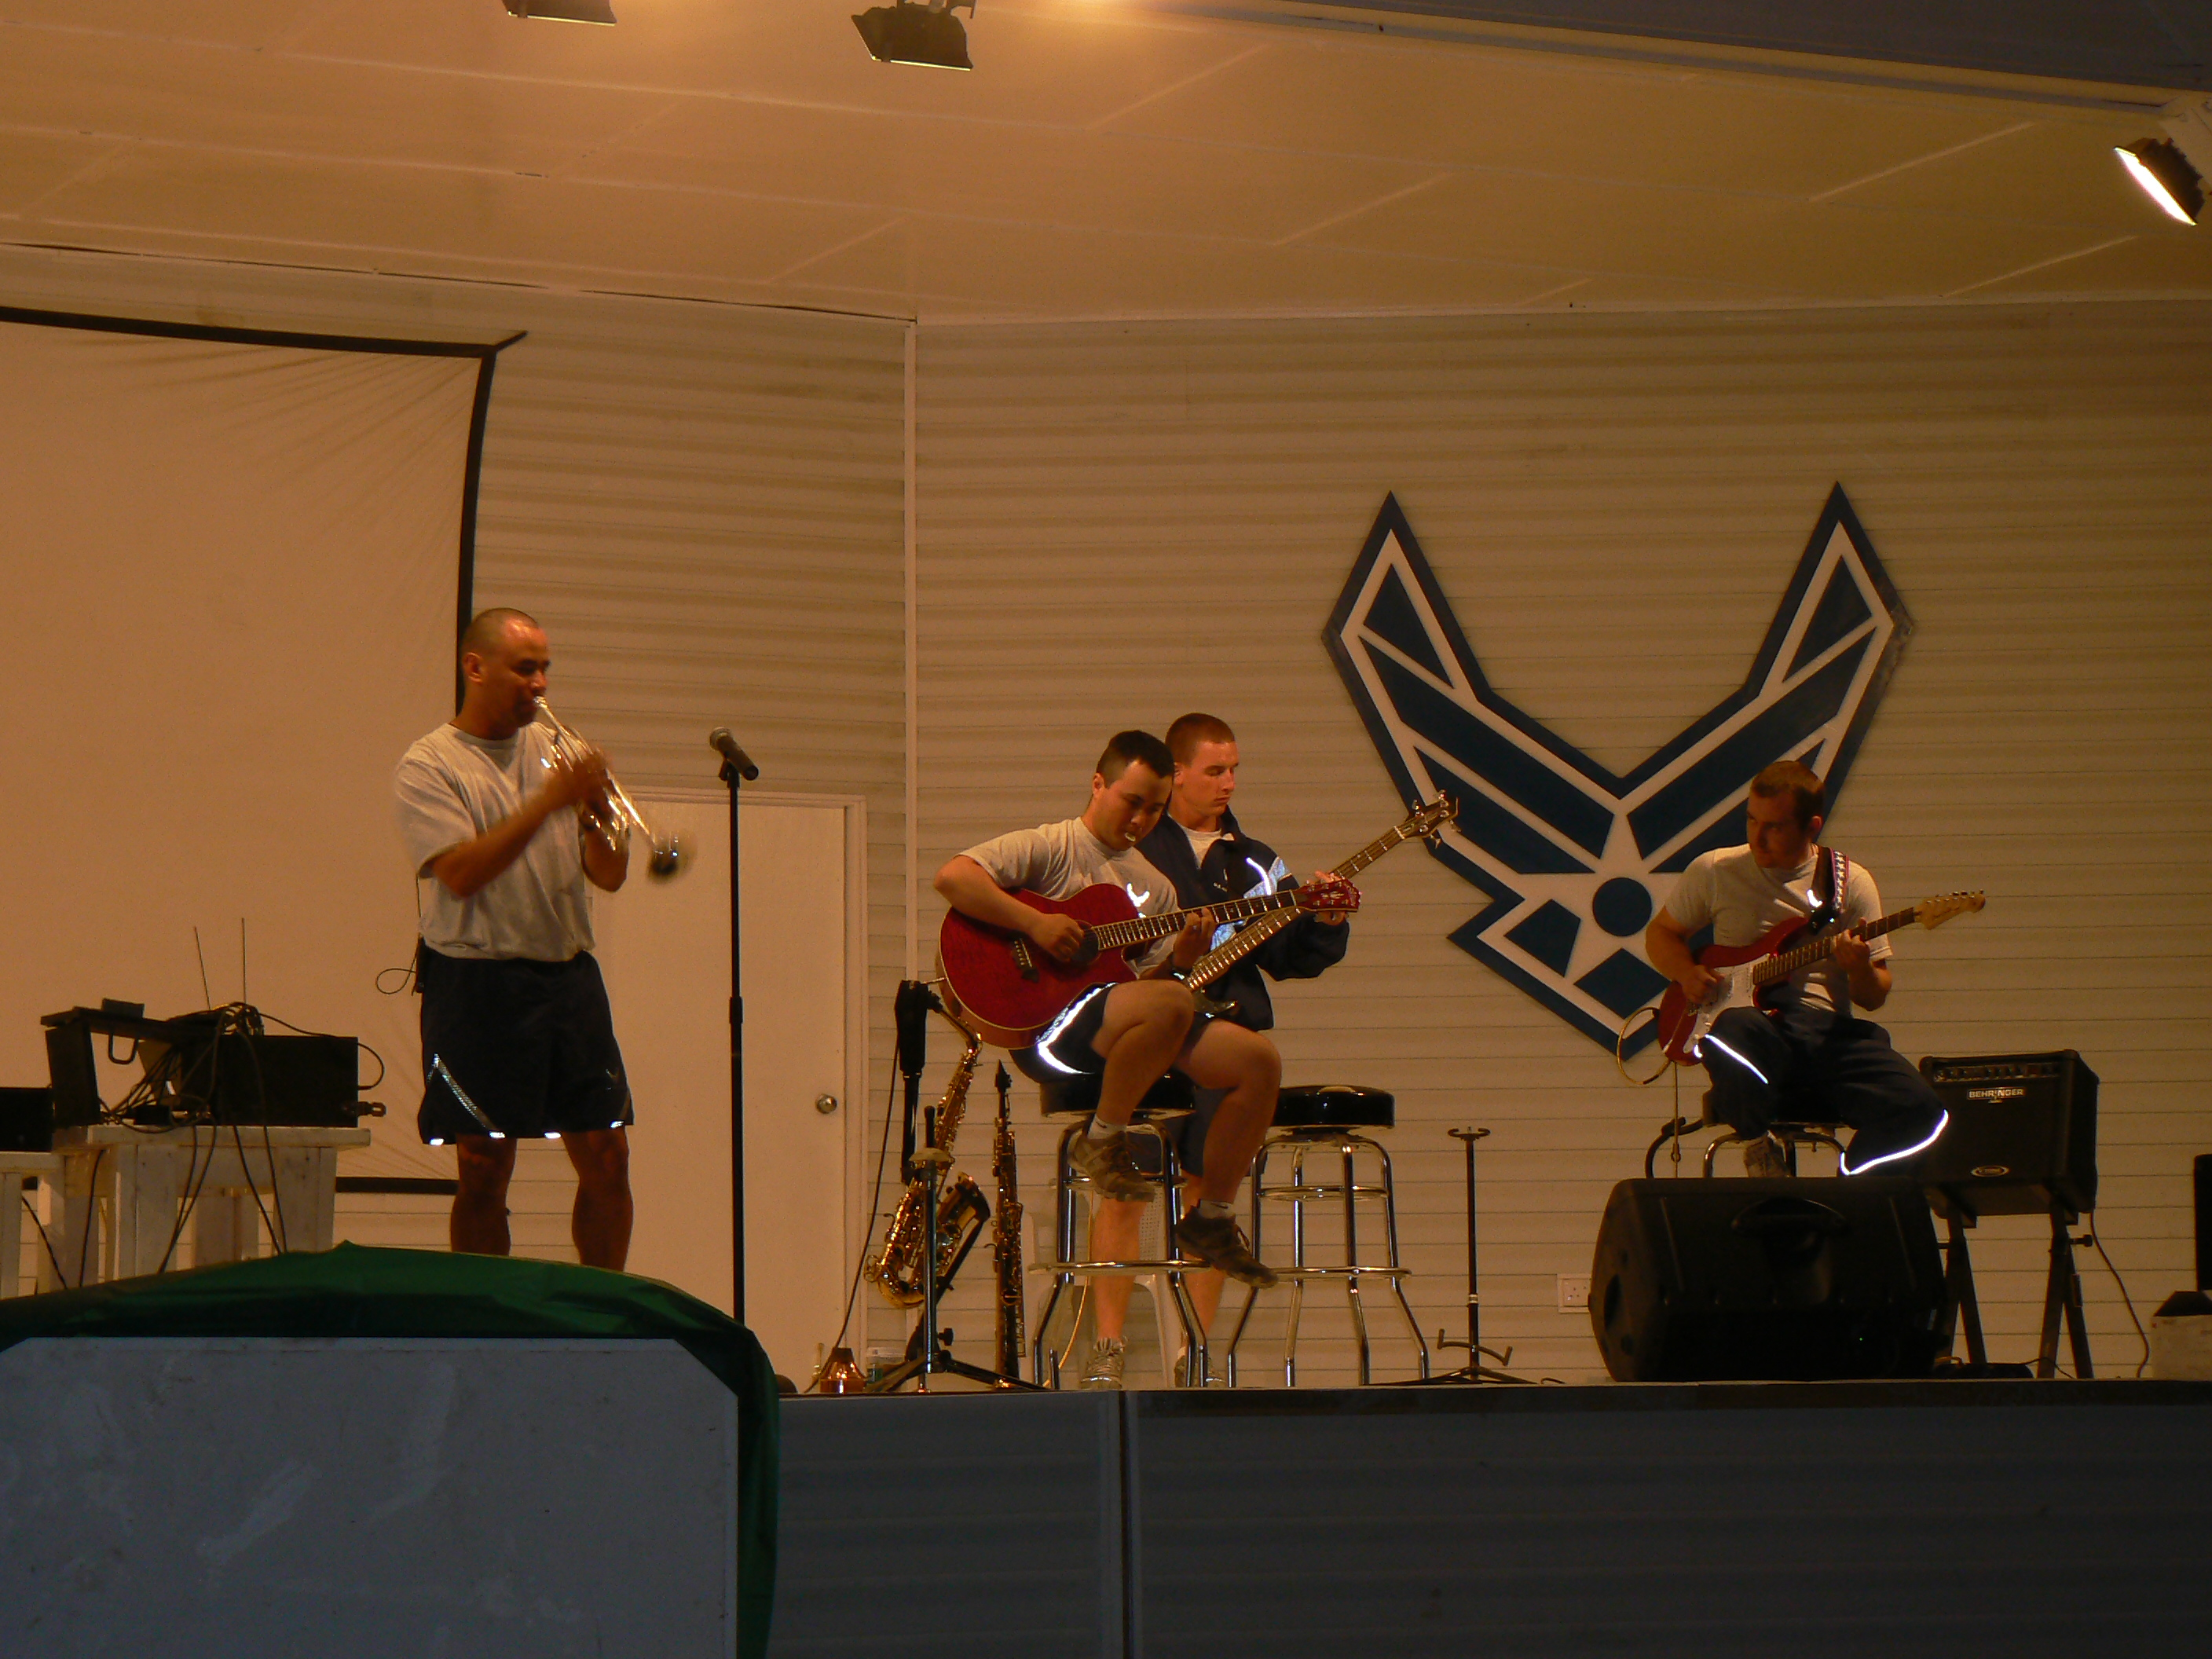 Live Concert Performance in Iraq